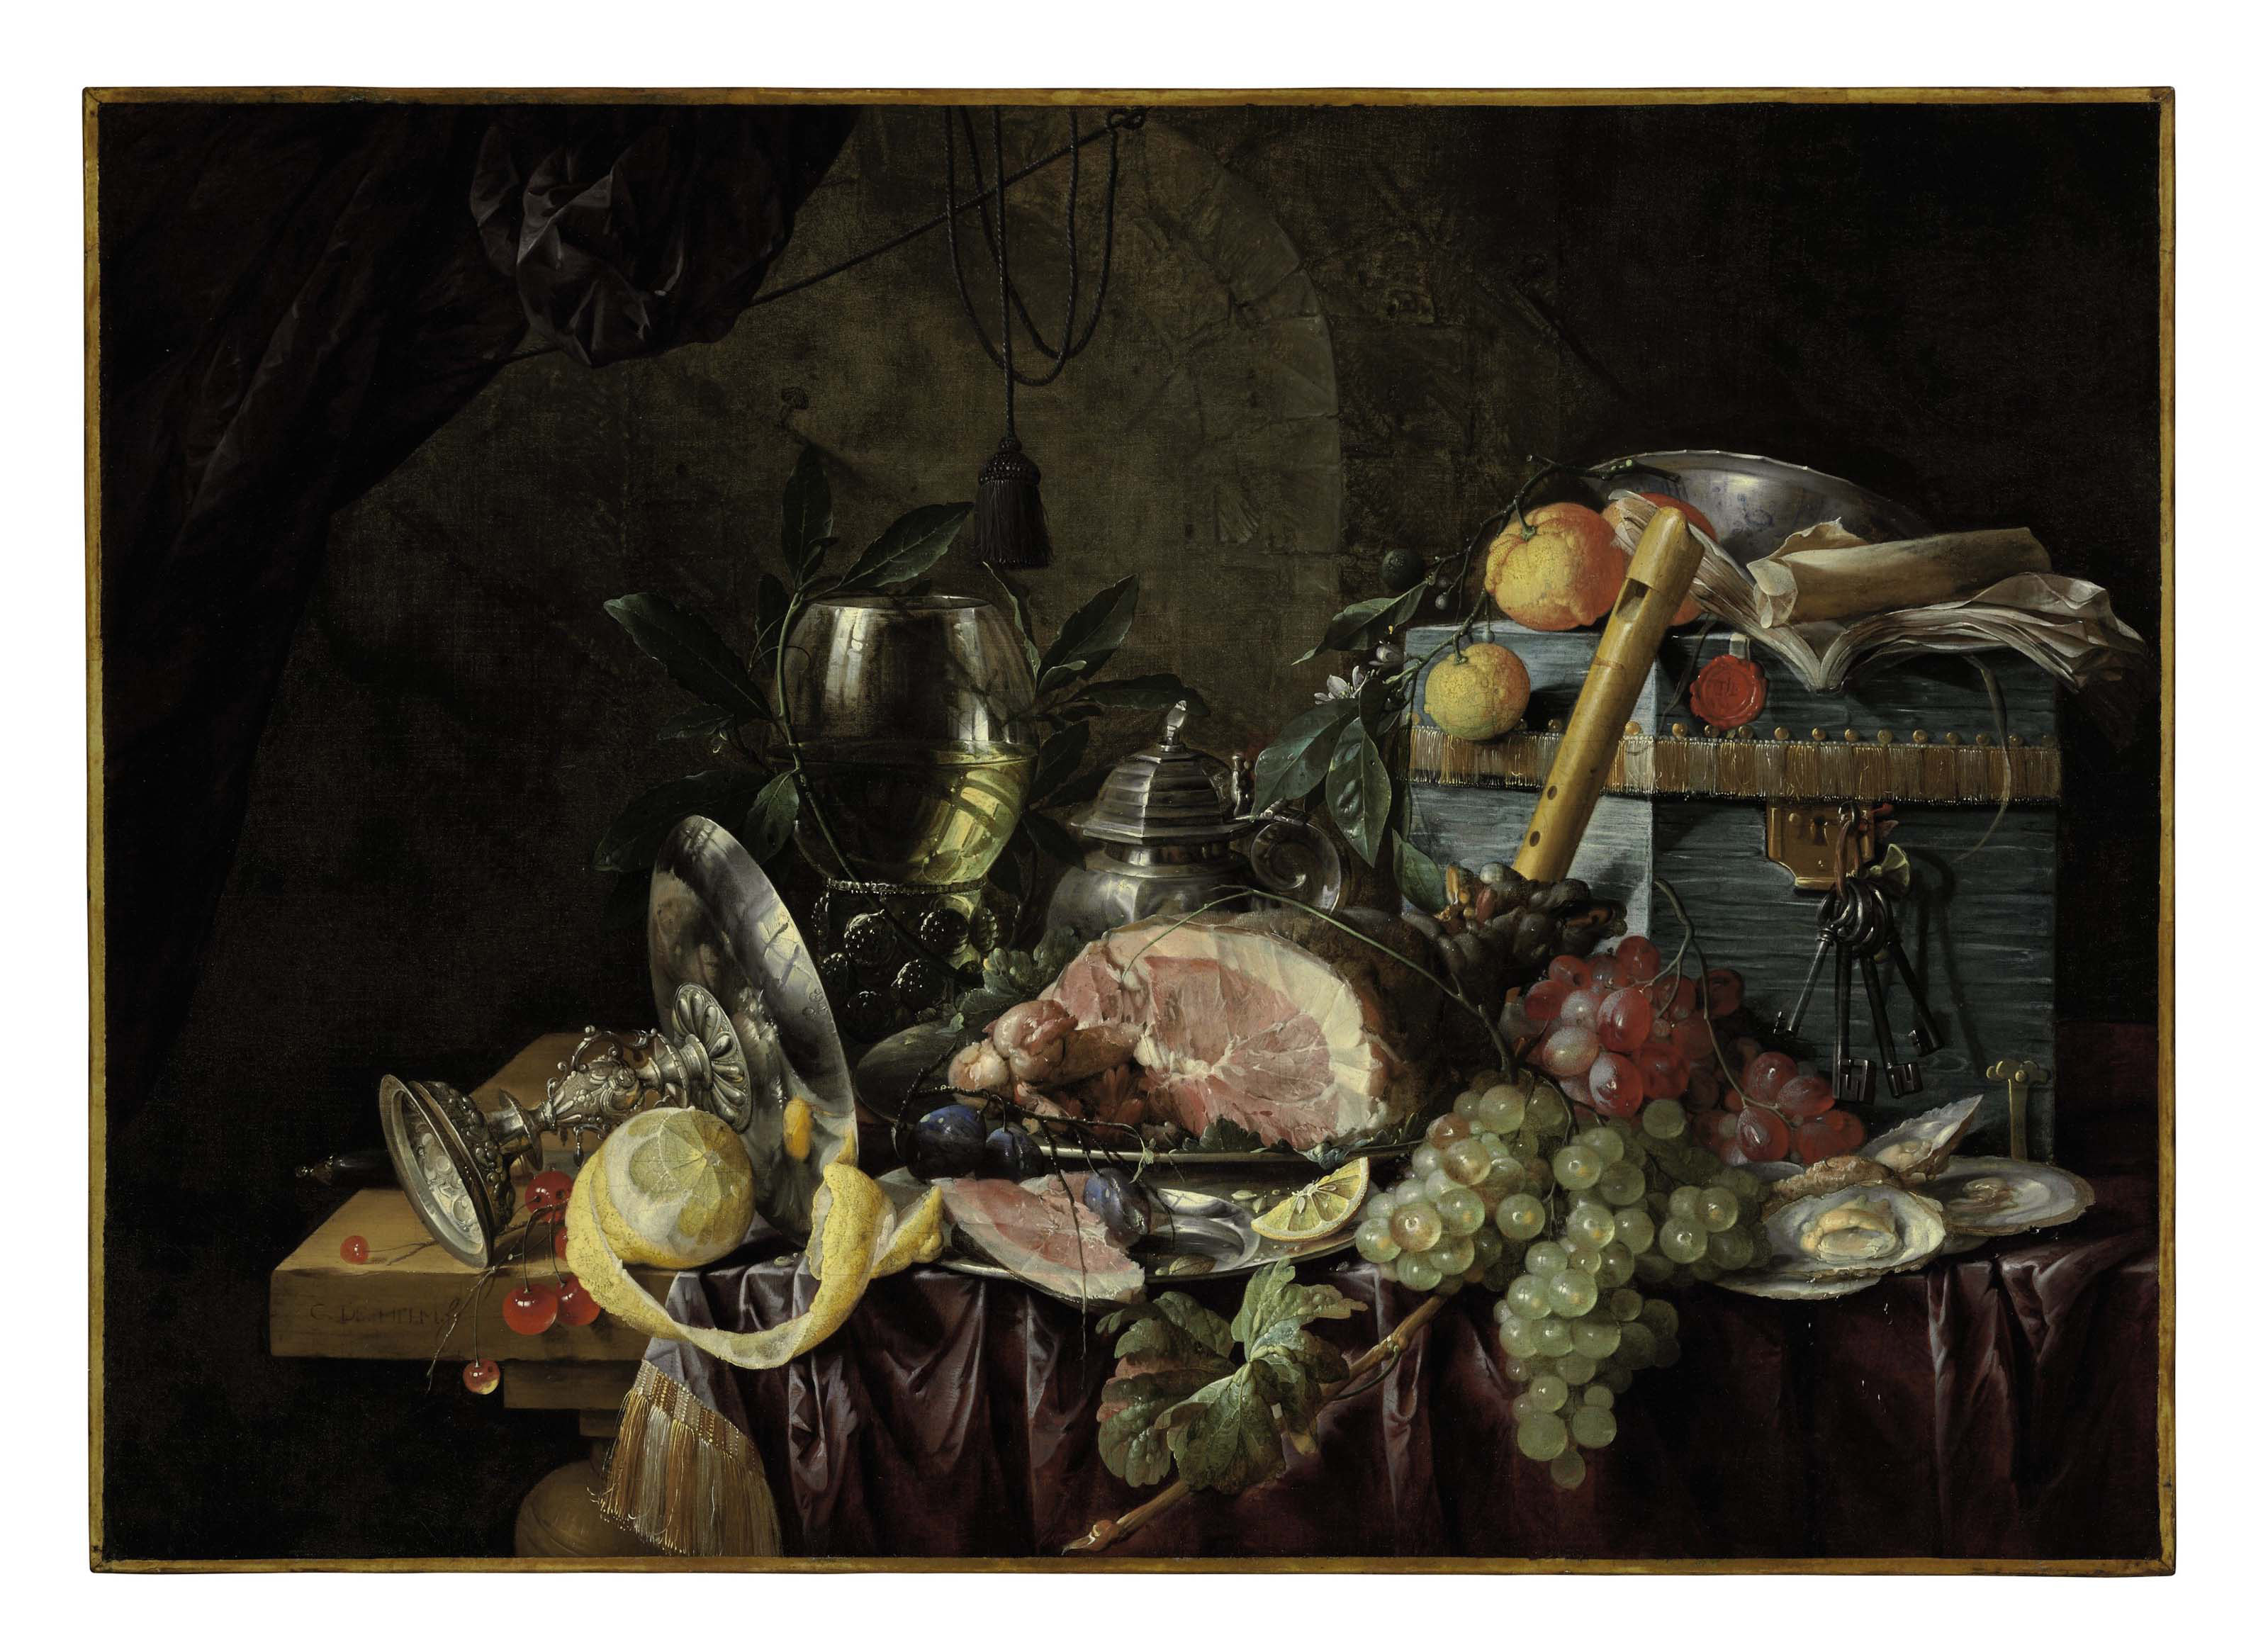 A ham on a pewter plate, grapes, berries, plums, lemons, and oysters with a roemer, tazza, pitcher, wan-li porcelain dish, recorder, book, and blue box on a partly draped table in a niche